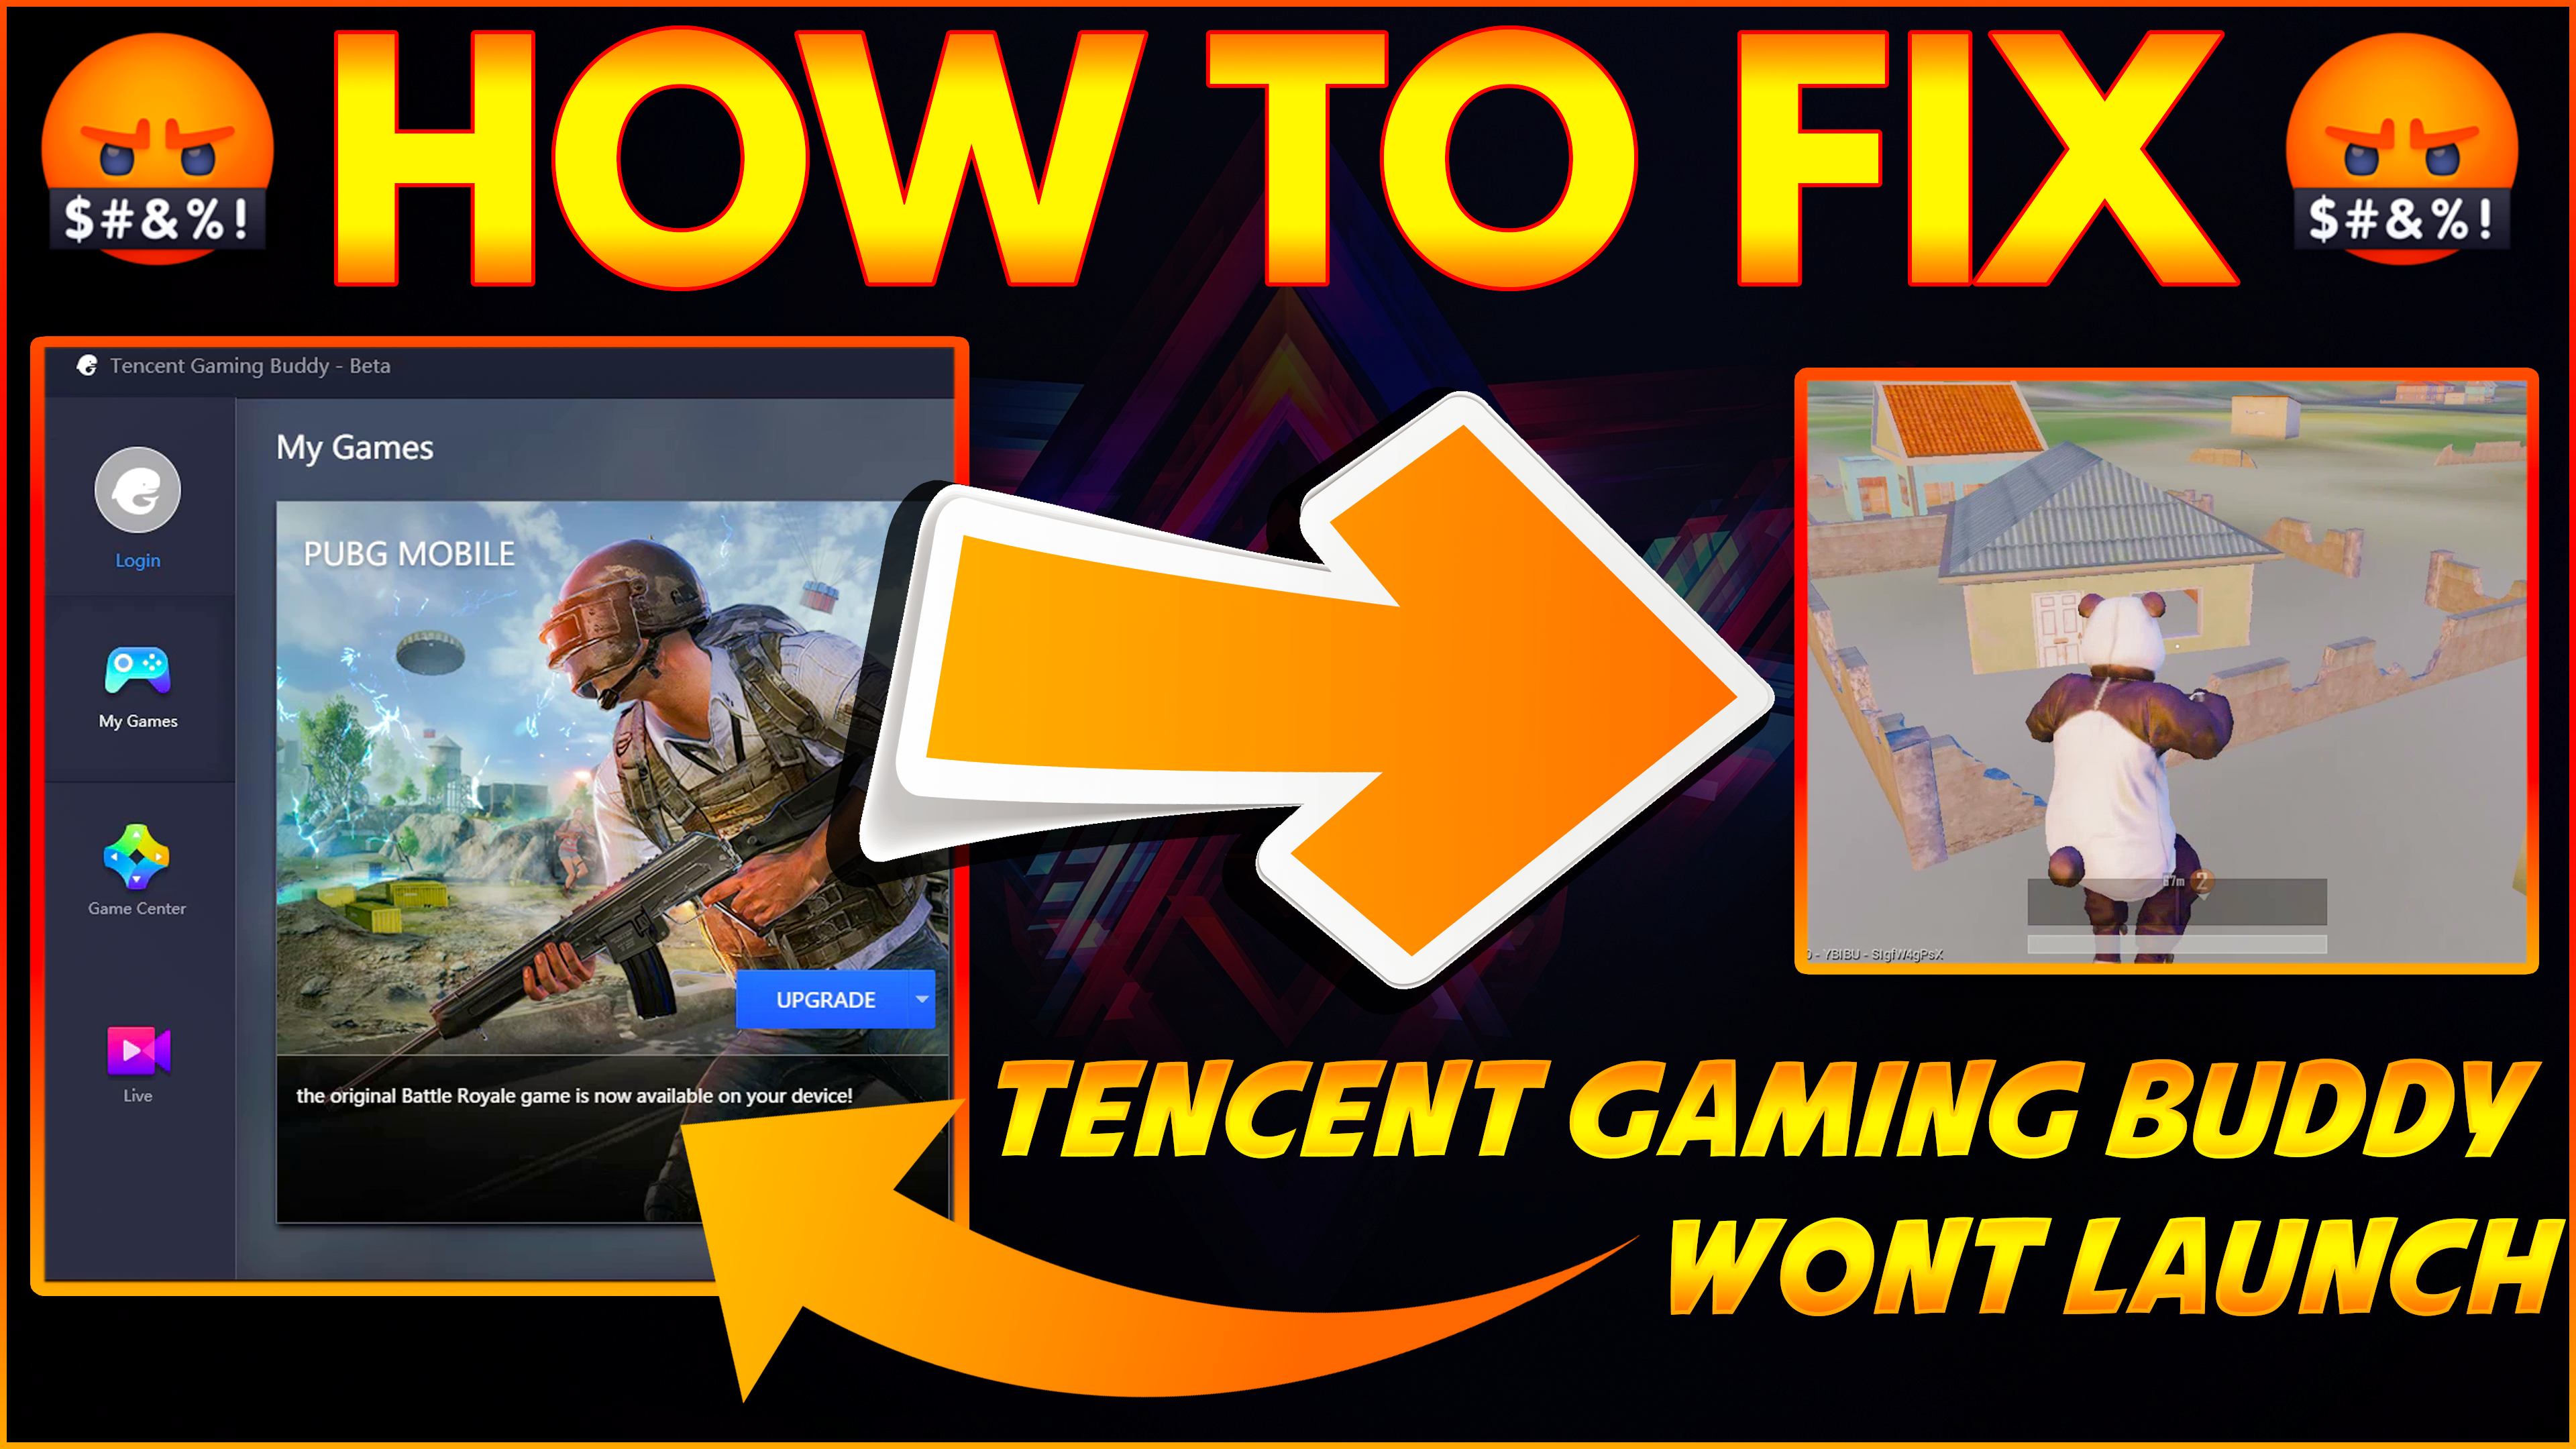 How to Fix PUBG Tencent Gaming Buddy, PUBG Emulator is not